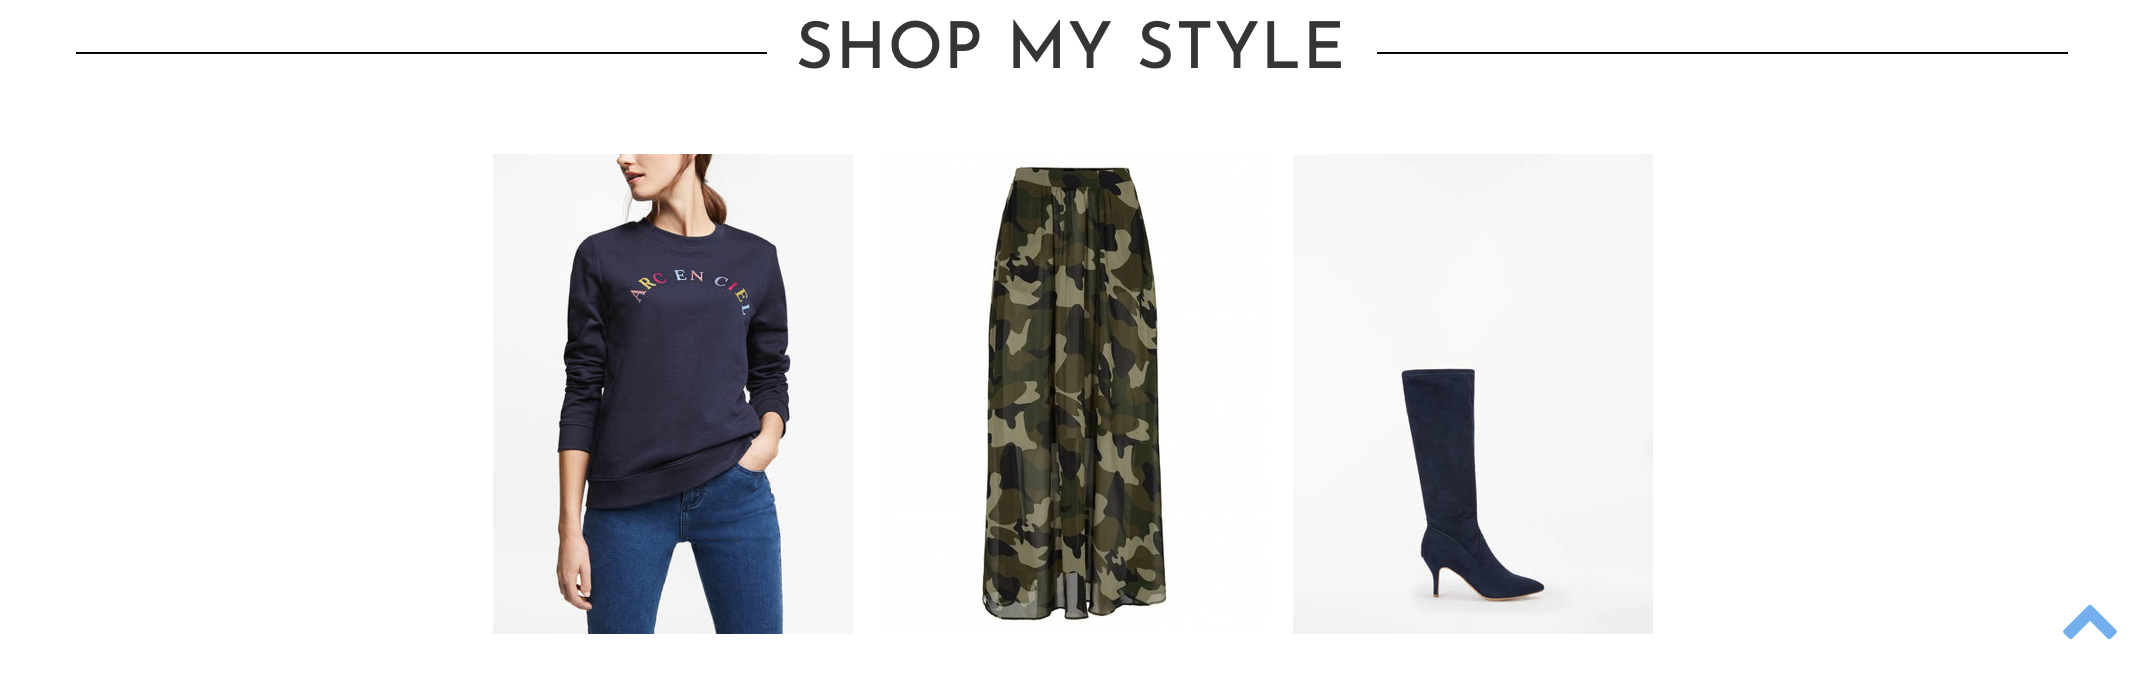 8007028c759f How to style & where to shop a camouflage skirt with a slogan sweatshirt &  kitten heel boots #ootd #wiw #lotd #over40 #over40fashion #fashion ...